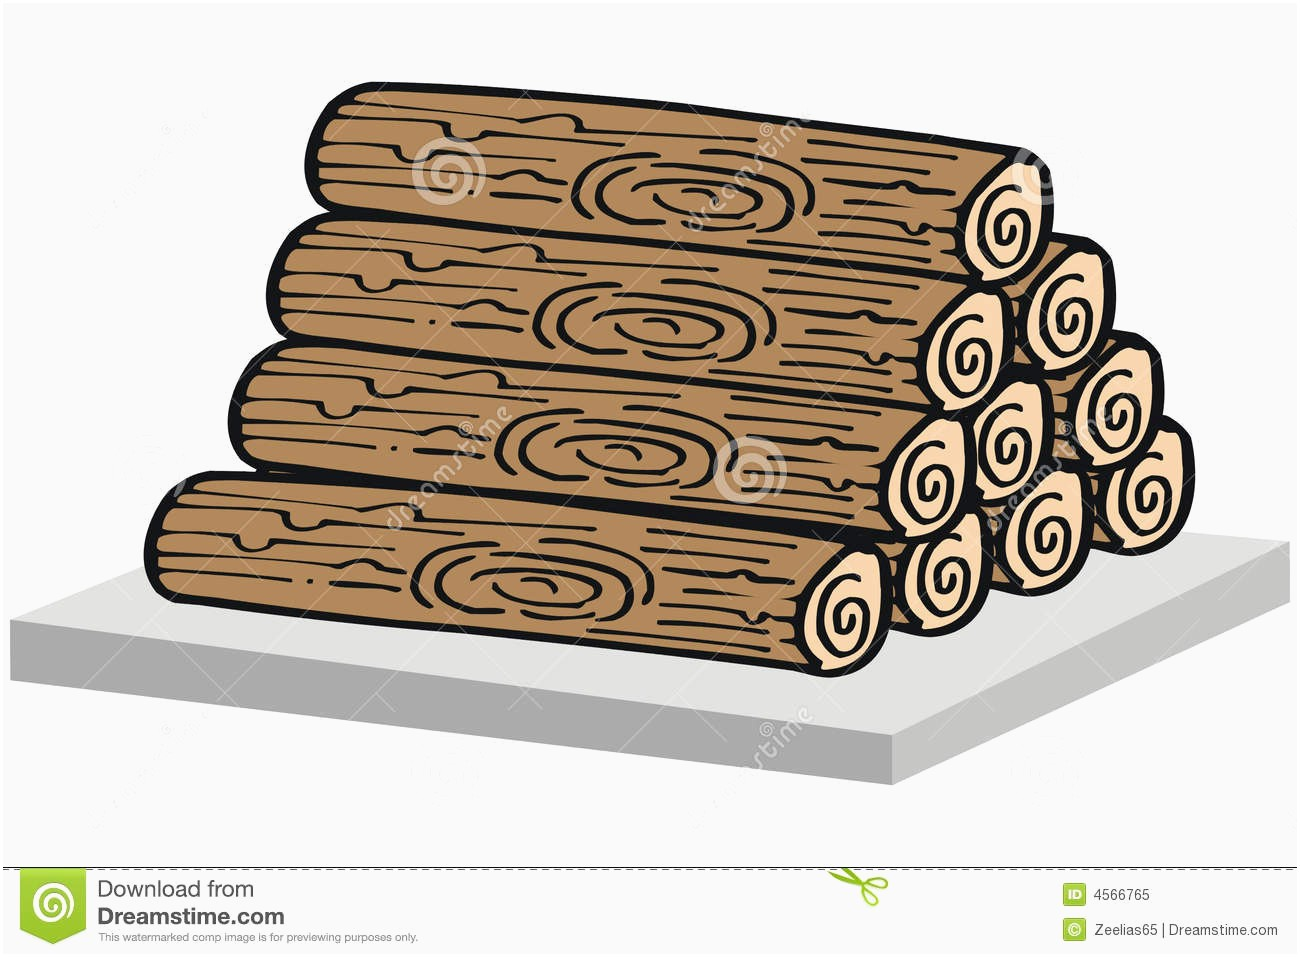 Woodpile clipart clipart freeuse download Logs clipart woodpile - 90 transparent clip arts, images and ... clipart freeuse download